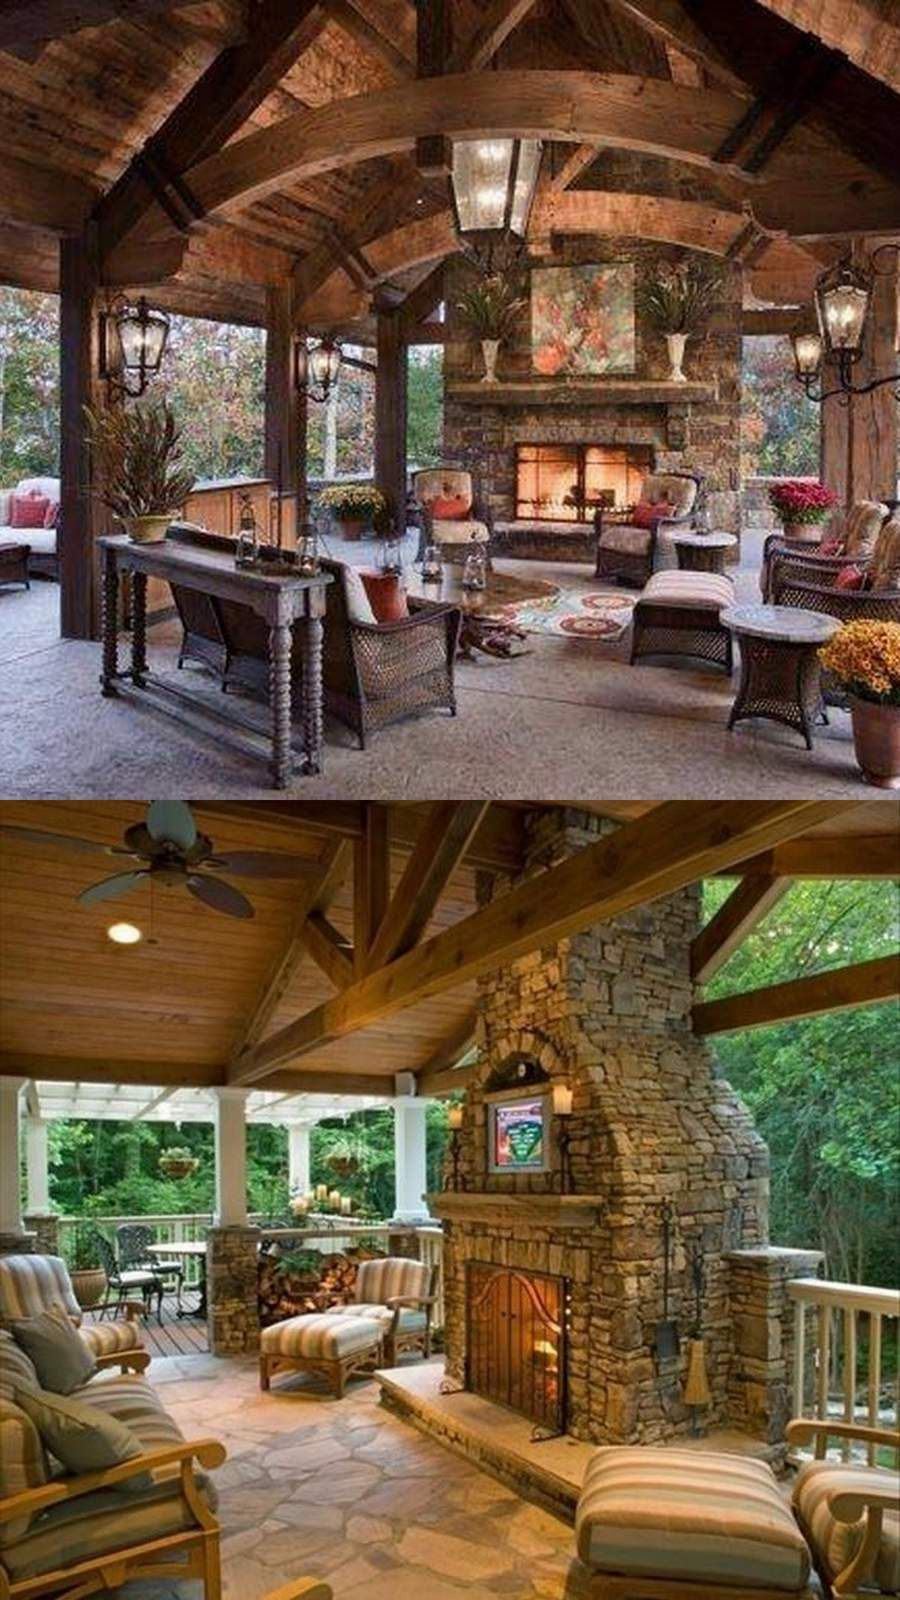 fireplace cost image on diy of budget outdoor plans a